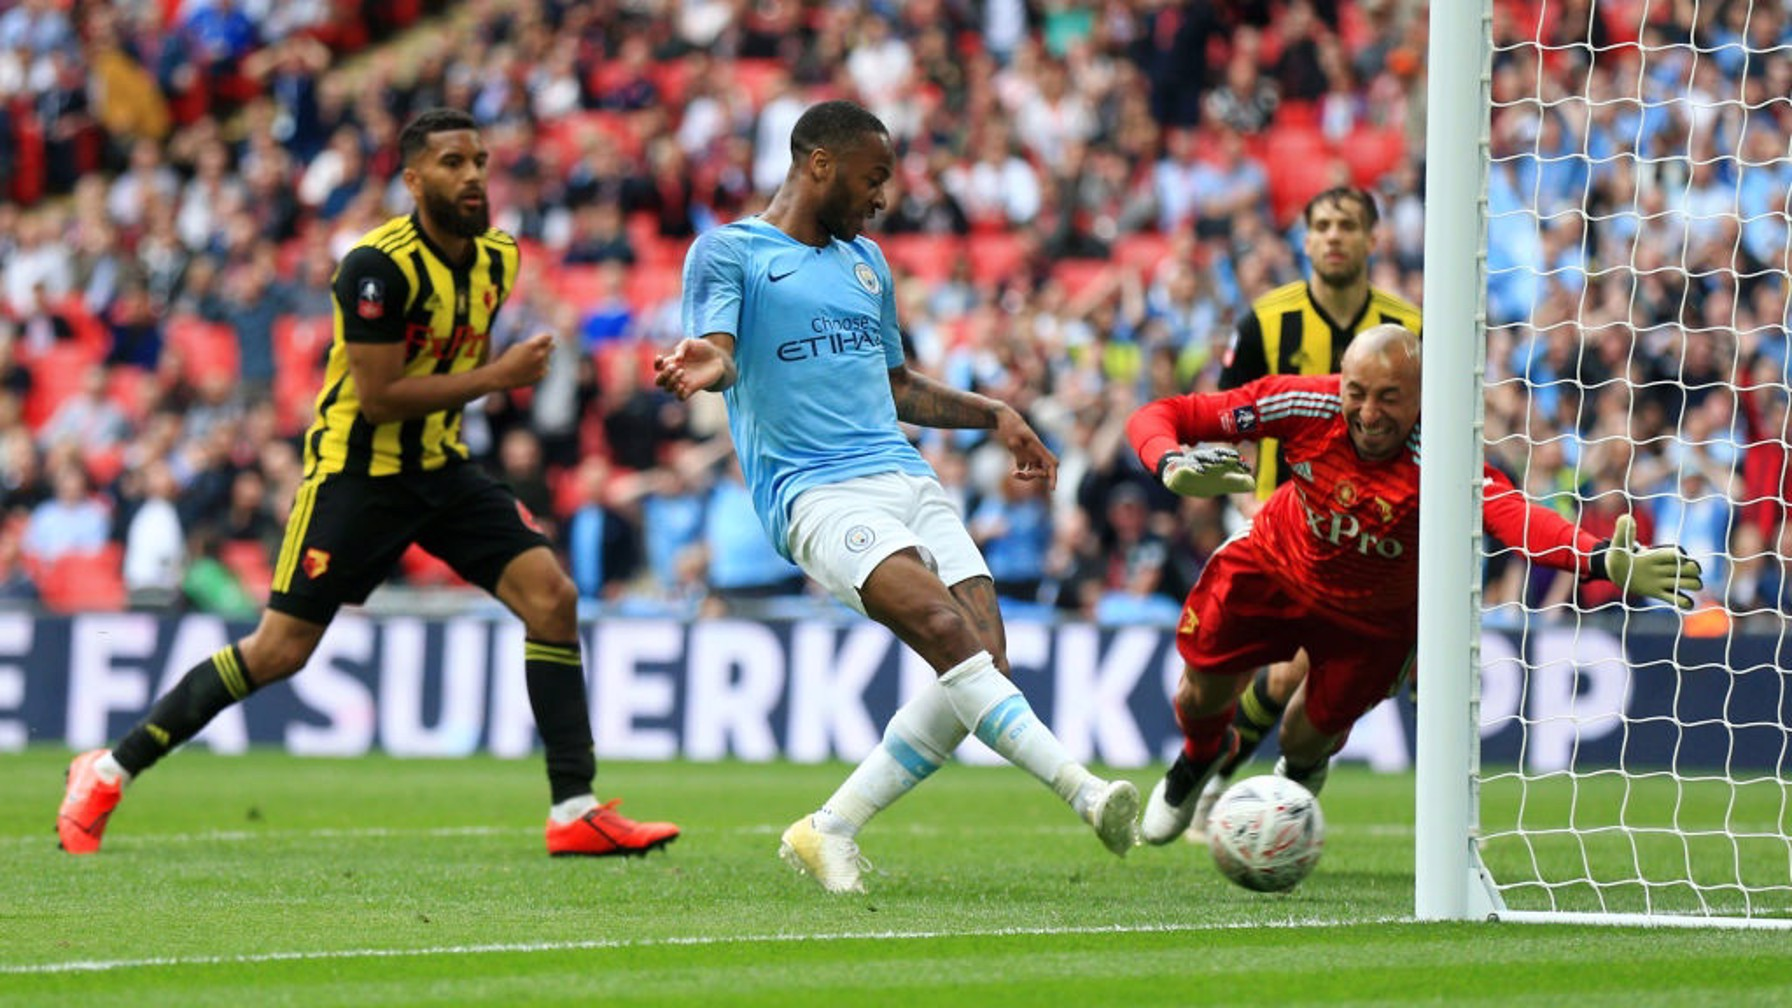 STERLING EFFORT: No doubt about the fifth either